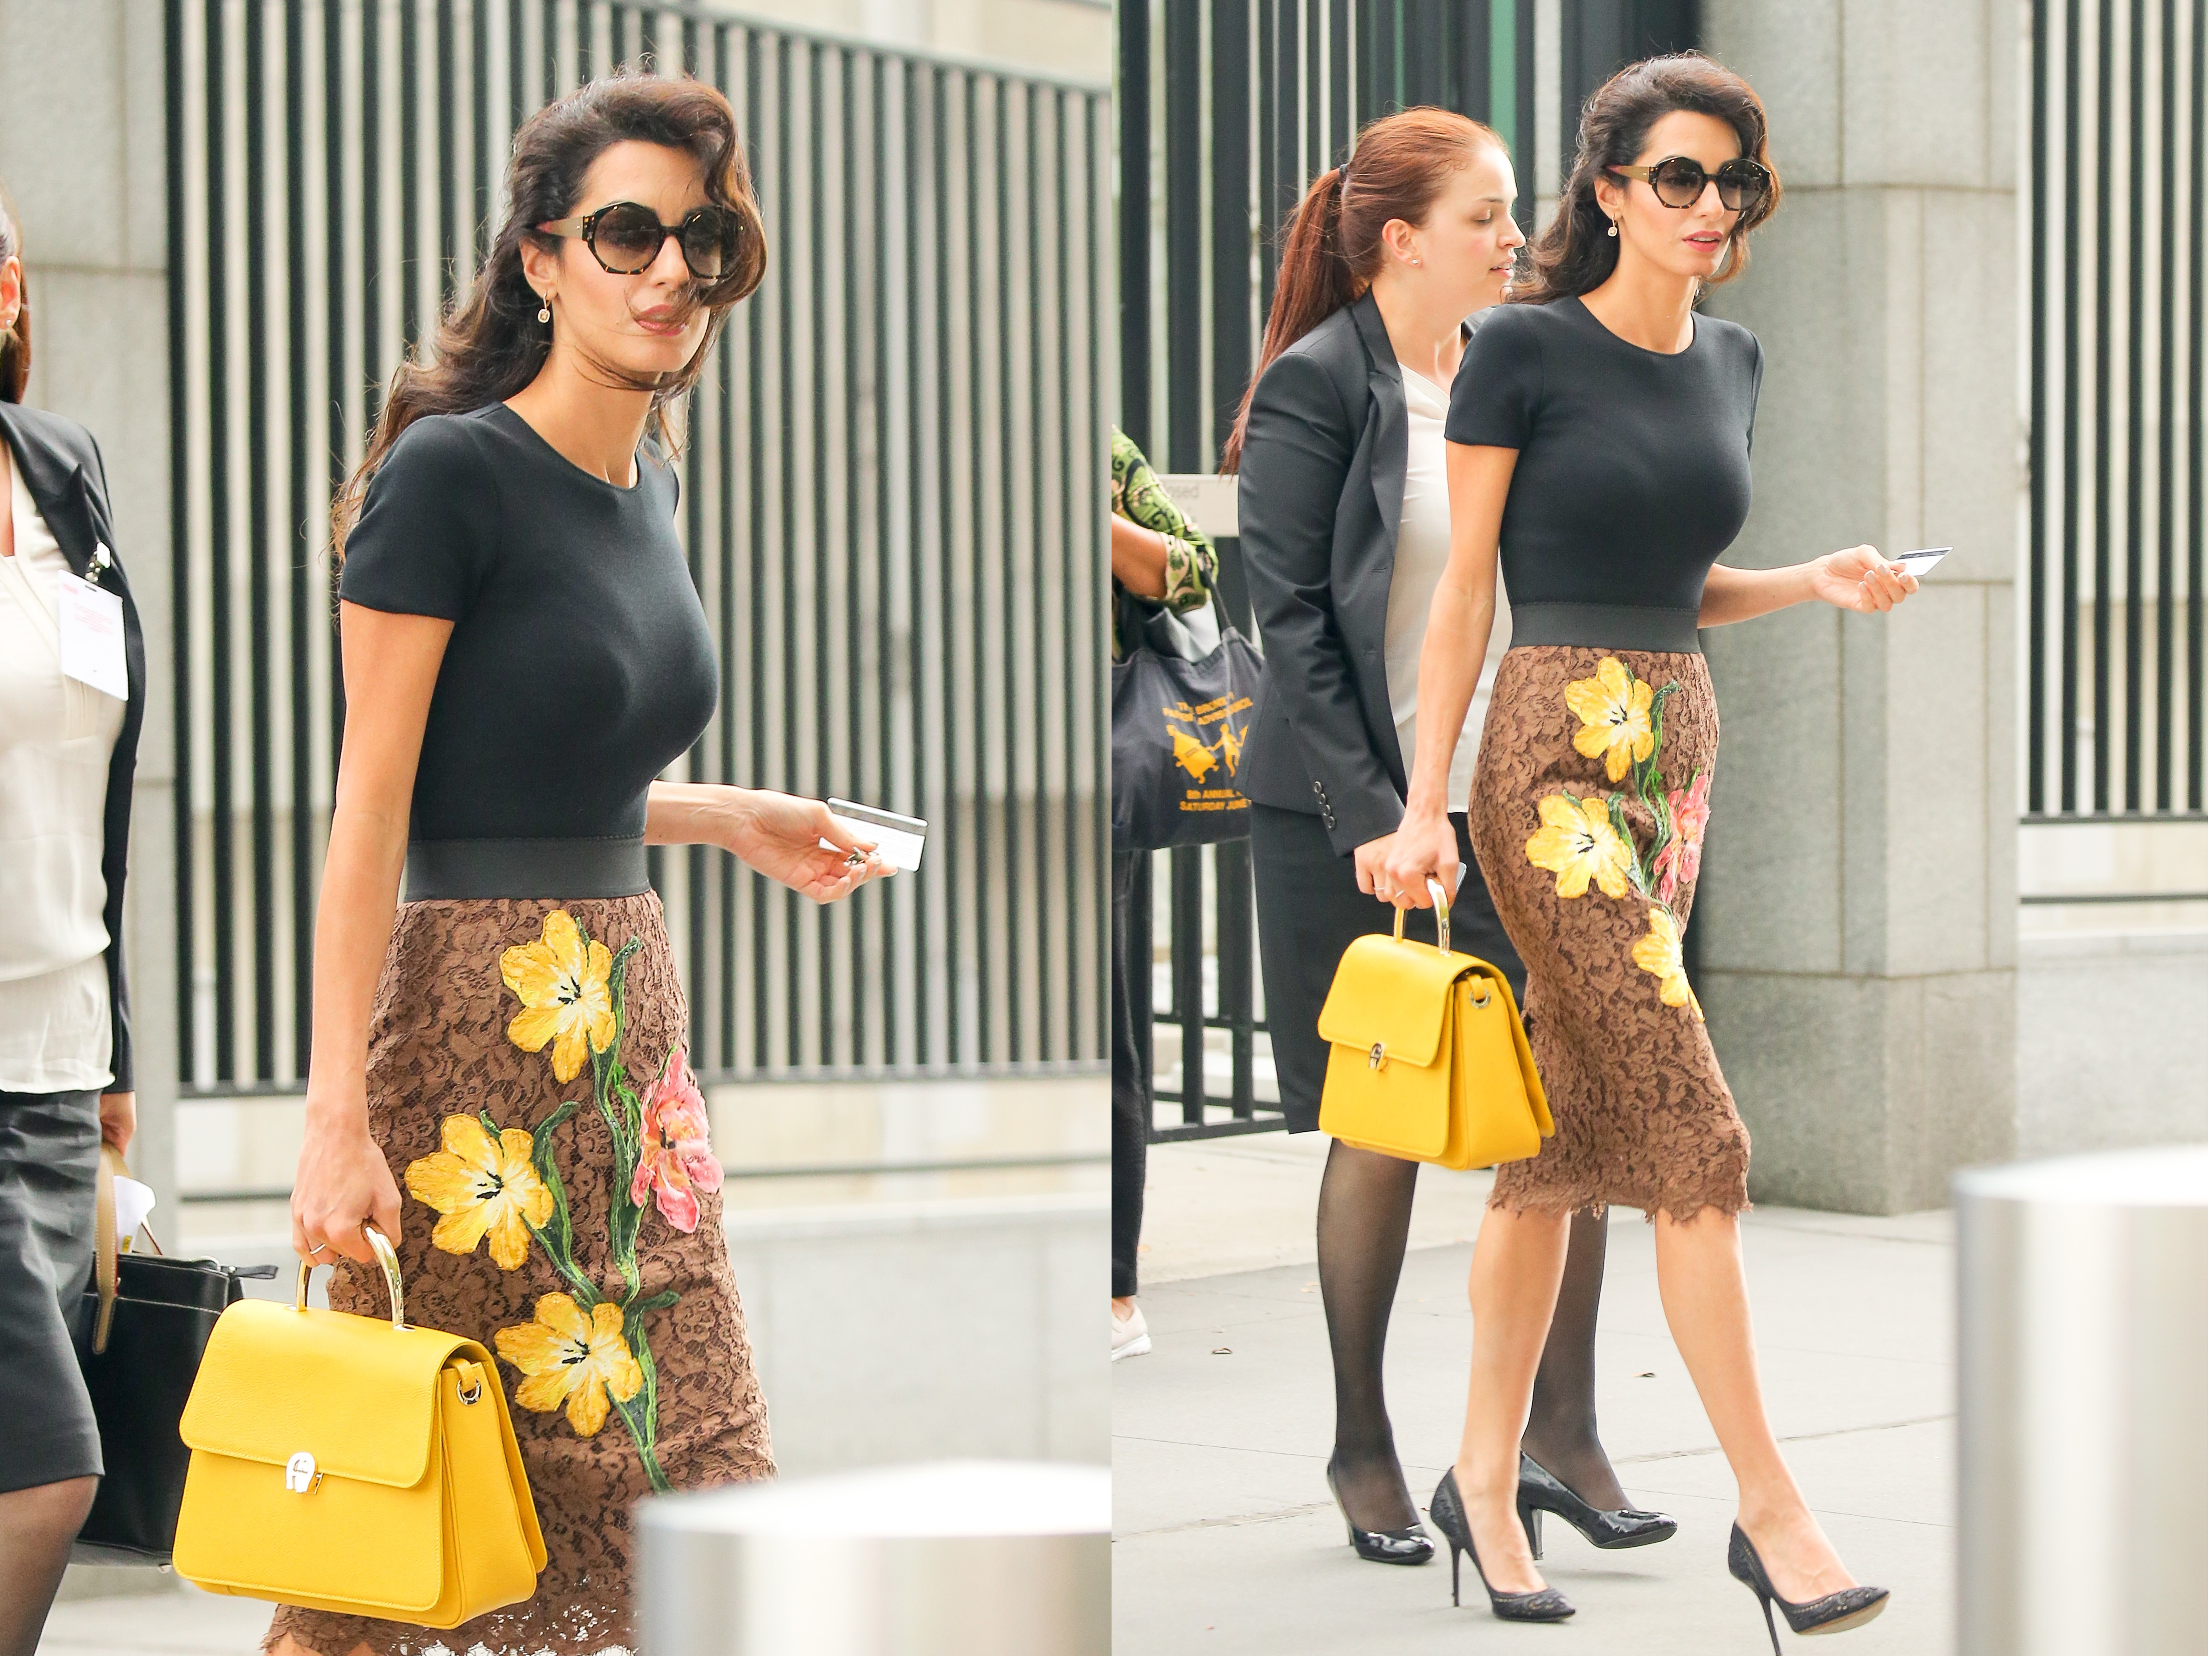 EXCLUSIVE: Amal Clooney wears a Dolce & Gabbana floral skirt while out and about in New York City Pictured: Amal Clooney Ref: SPL1363952  280916   EXCLUSIVE Picture by: Felipe Ramales / Splash News Splash News and Pictures Los Angeles:310-821-2666 New York:212-619-2666 London:870-934-2666 photodesk@splashnews.com